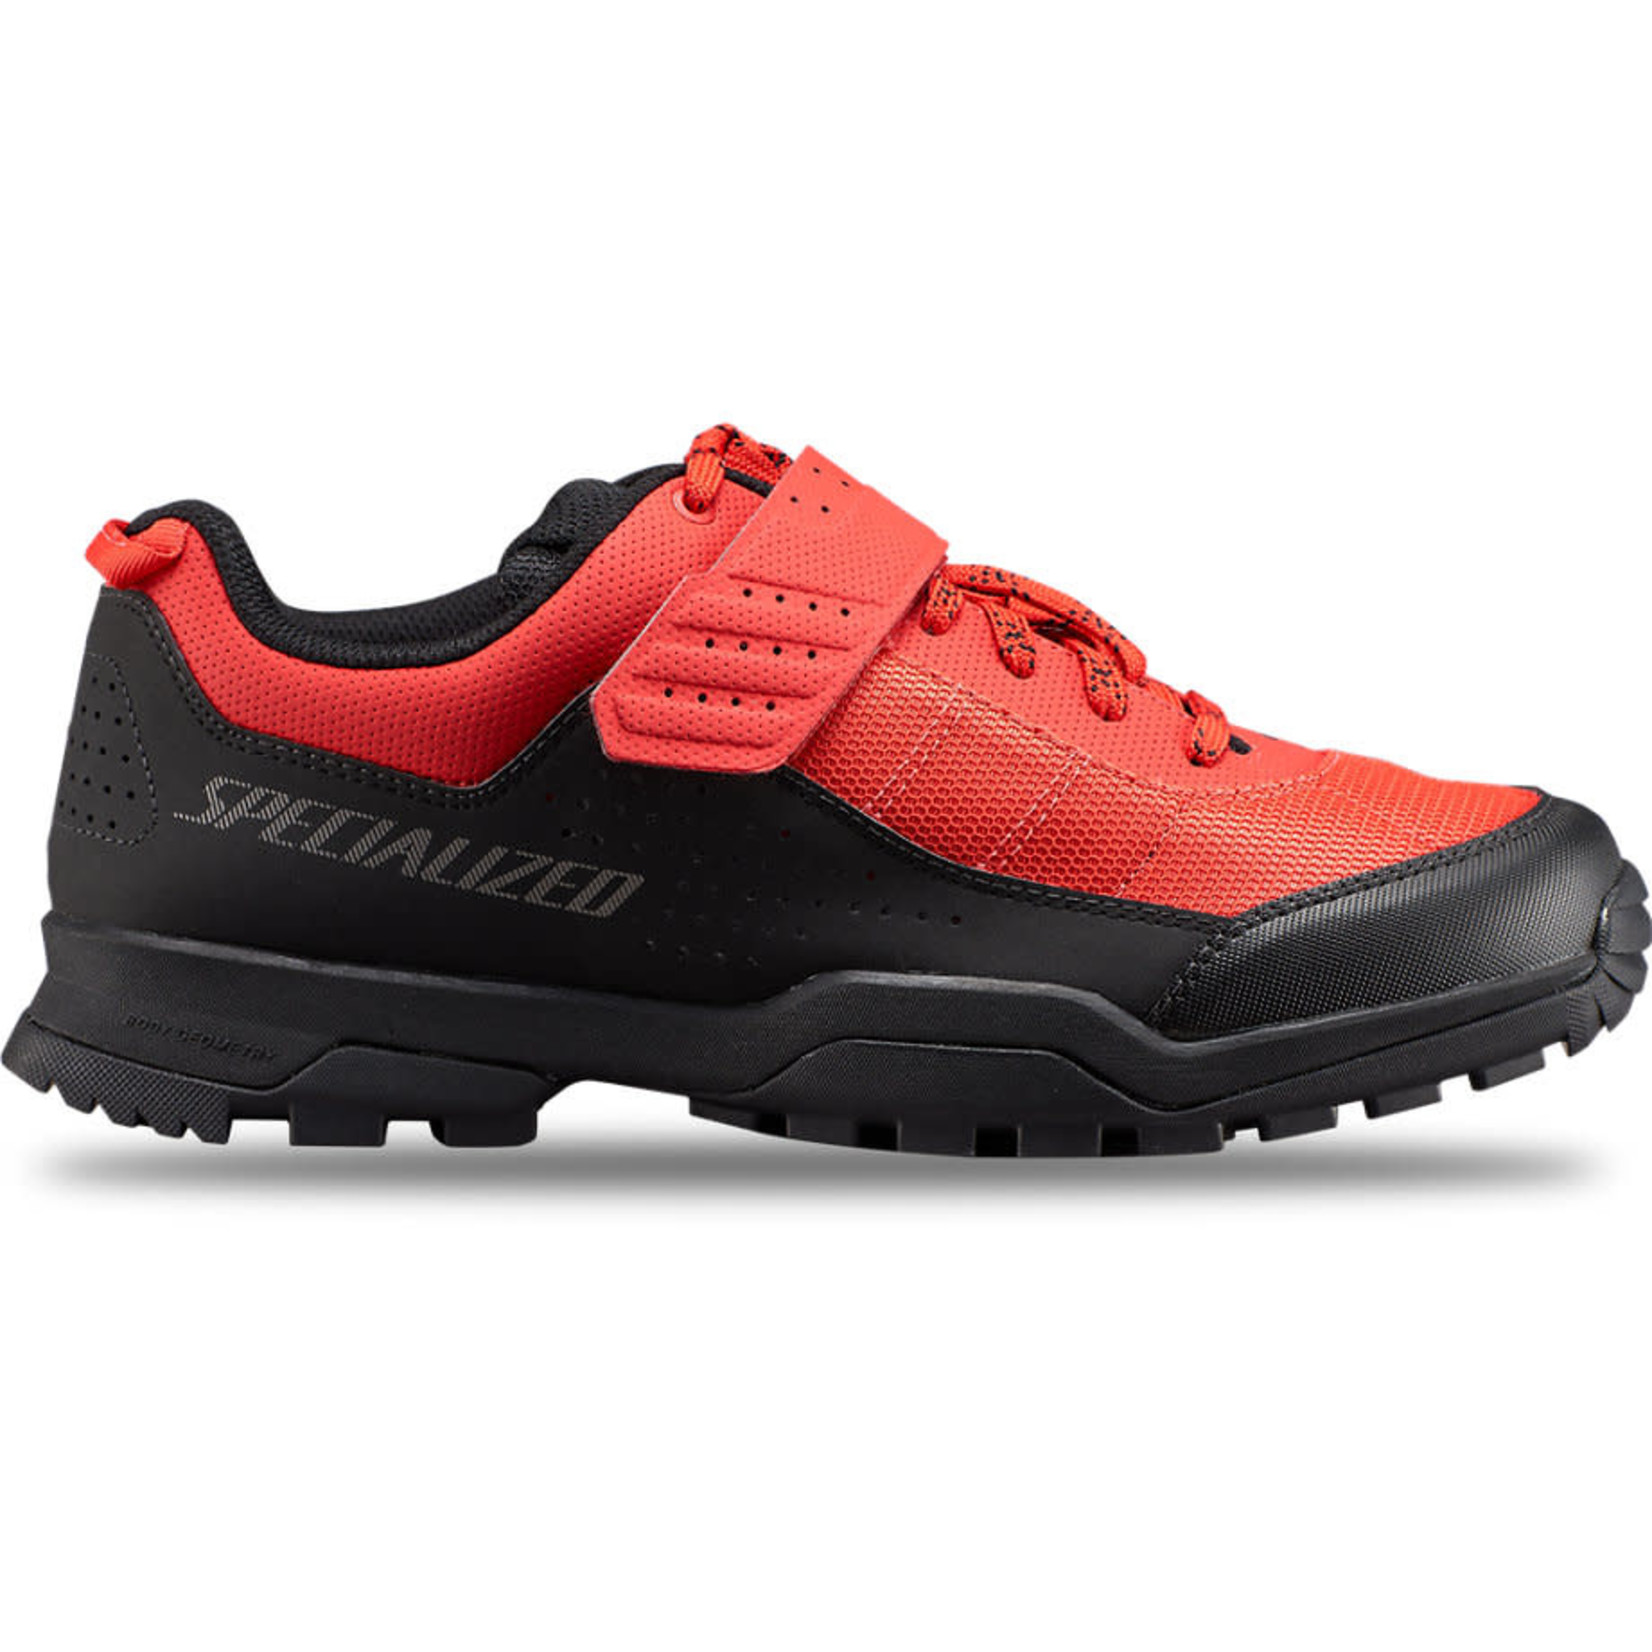 Specialized Specialized Rime 1.0 MTB Shoe